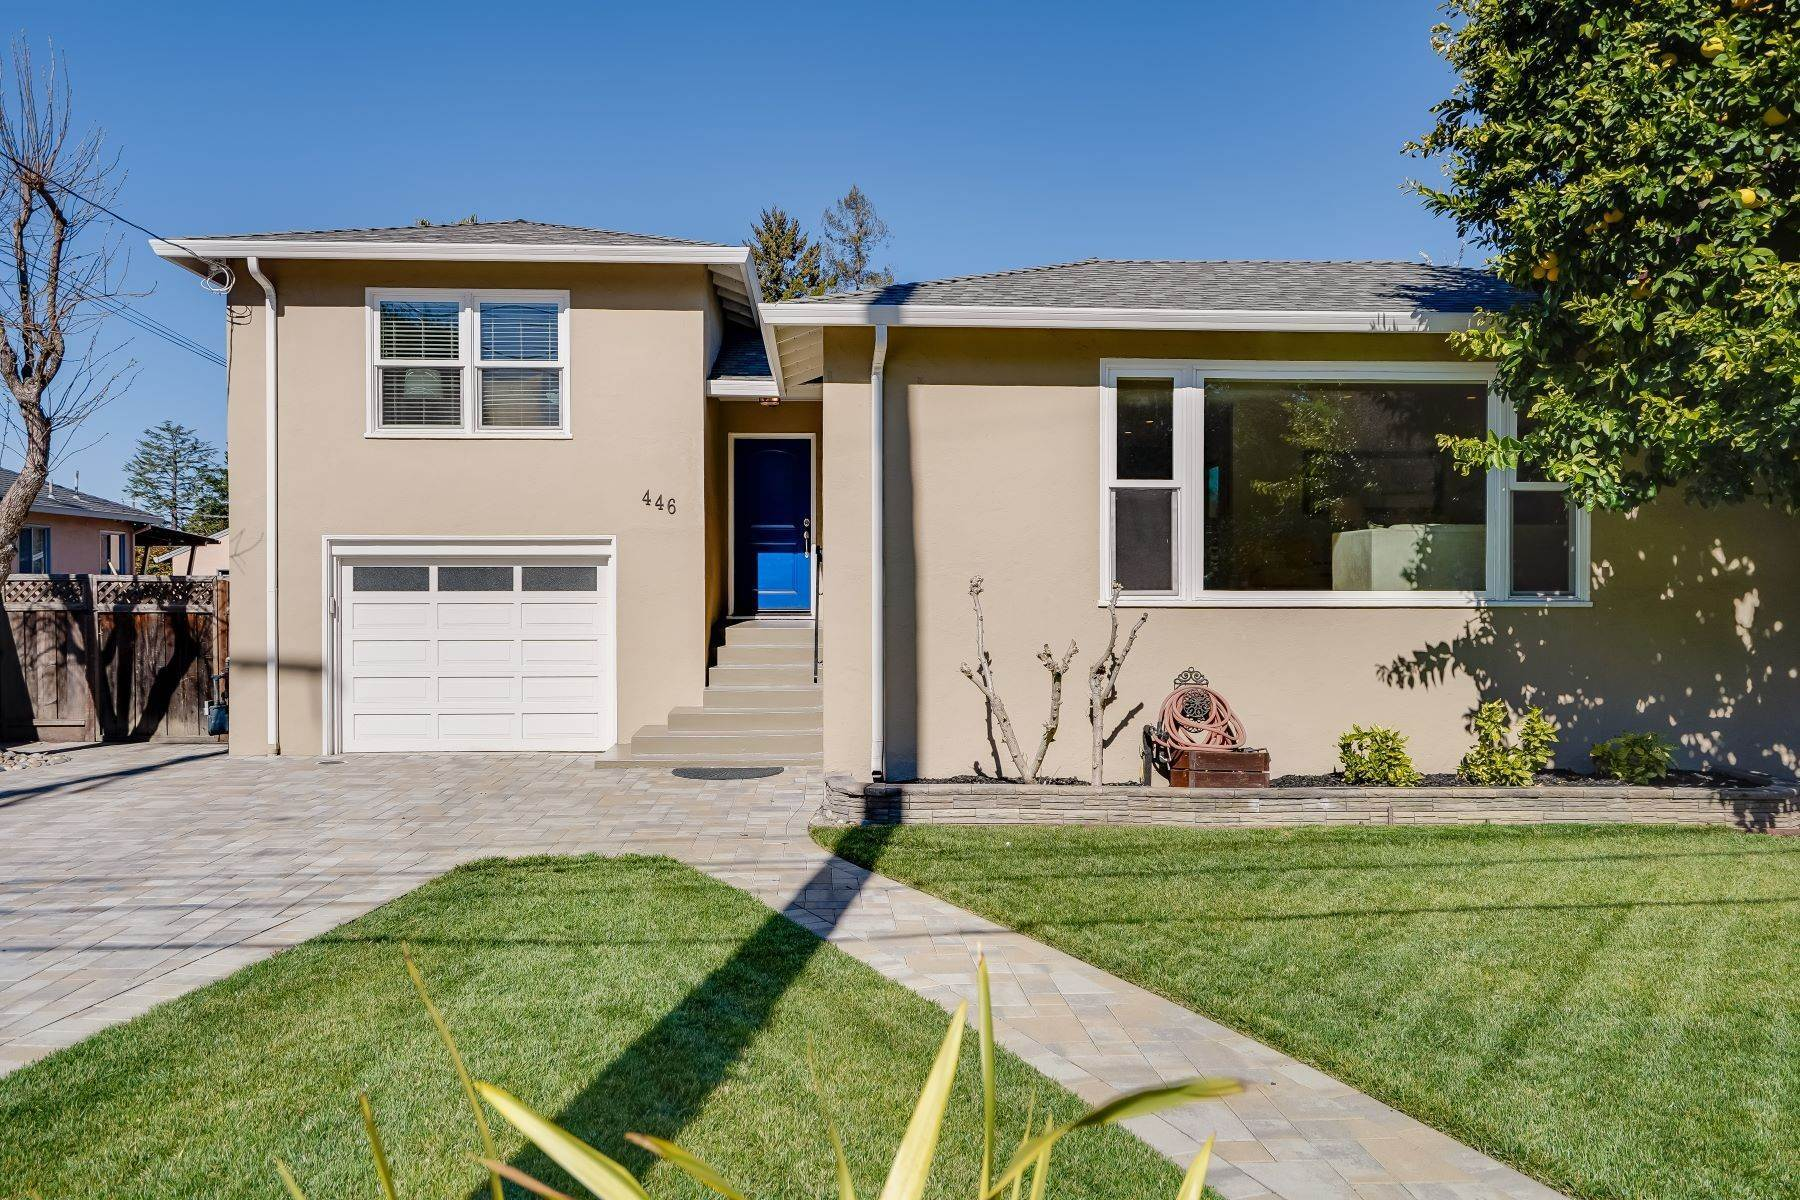 Single Family Homes for Sale at Wonderfully Remodeled Split Level Home 446 East Oakwood Boulevard Redwood City, California 94061 United States